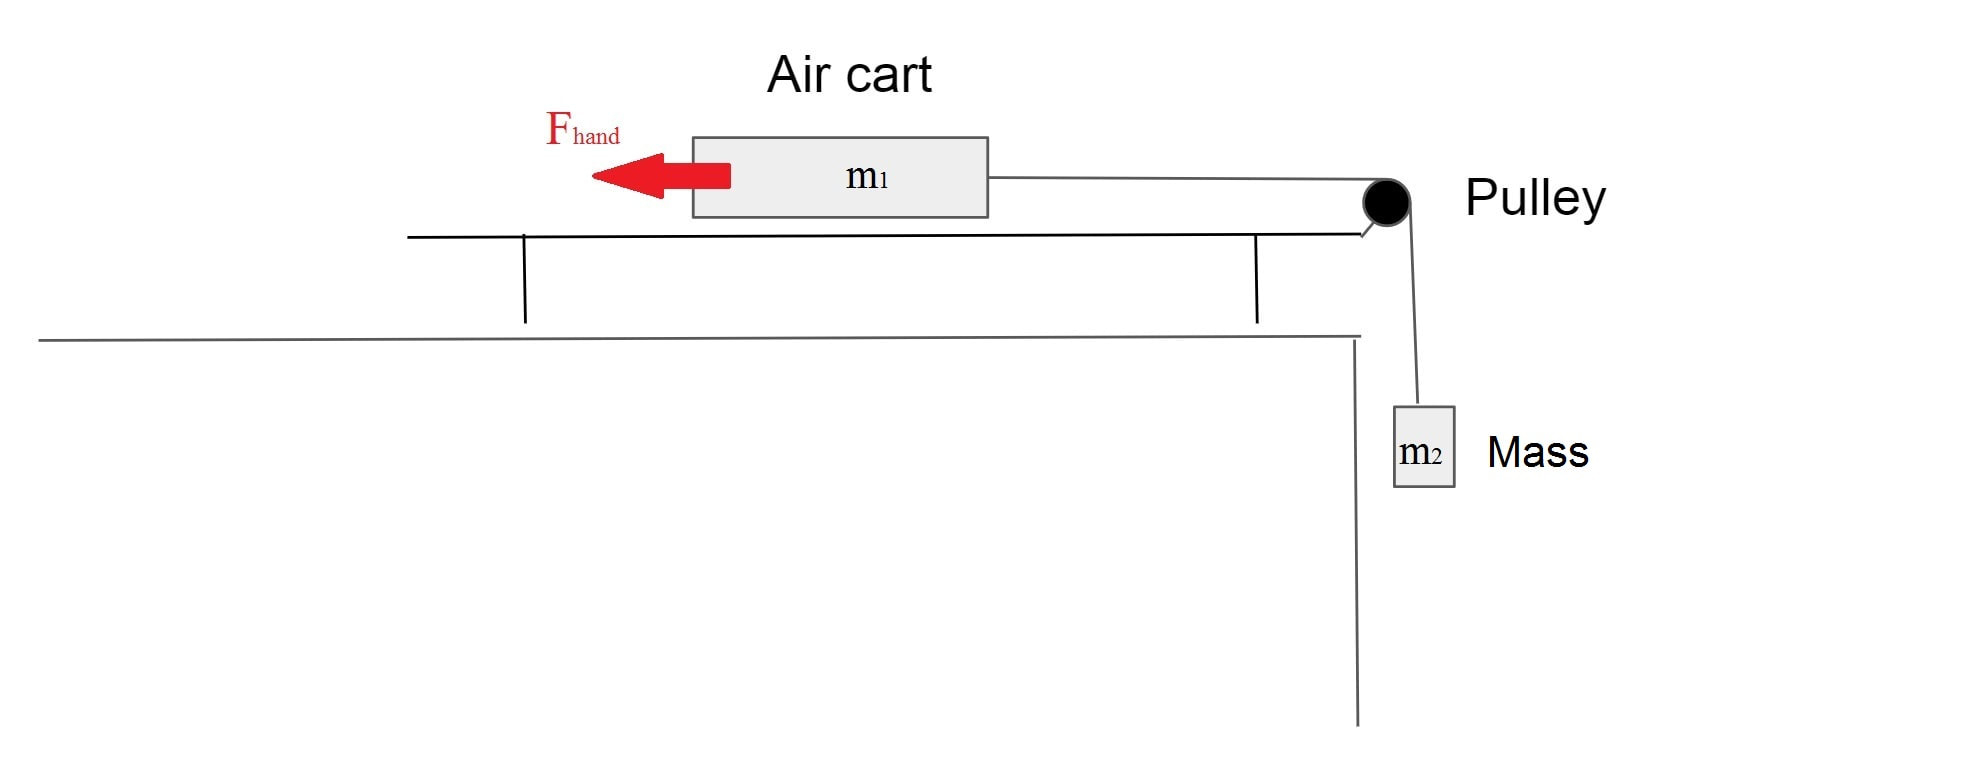 Free Body Diagrams A5s18 Physics 5 Labs